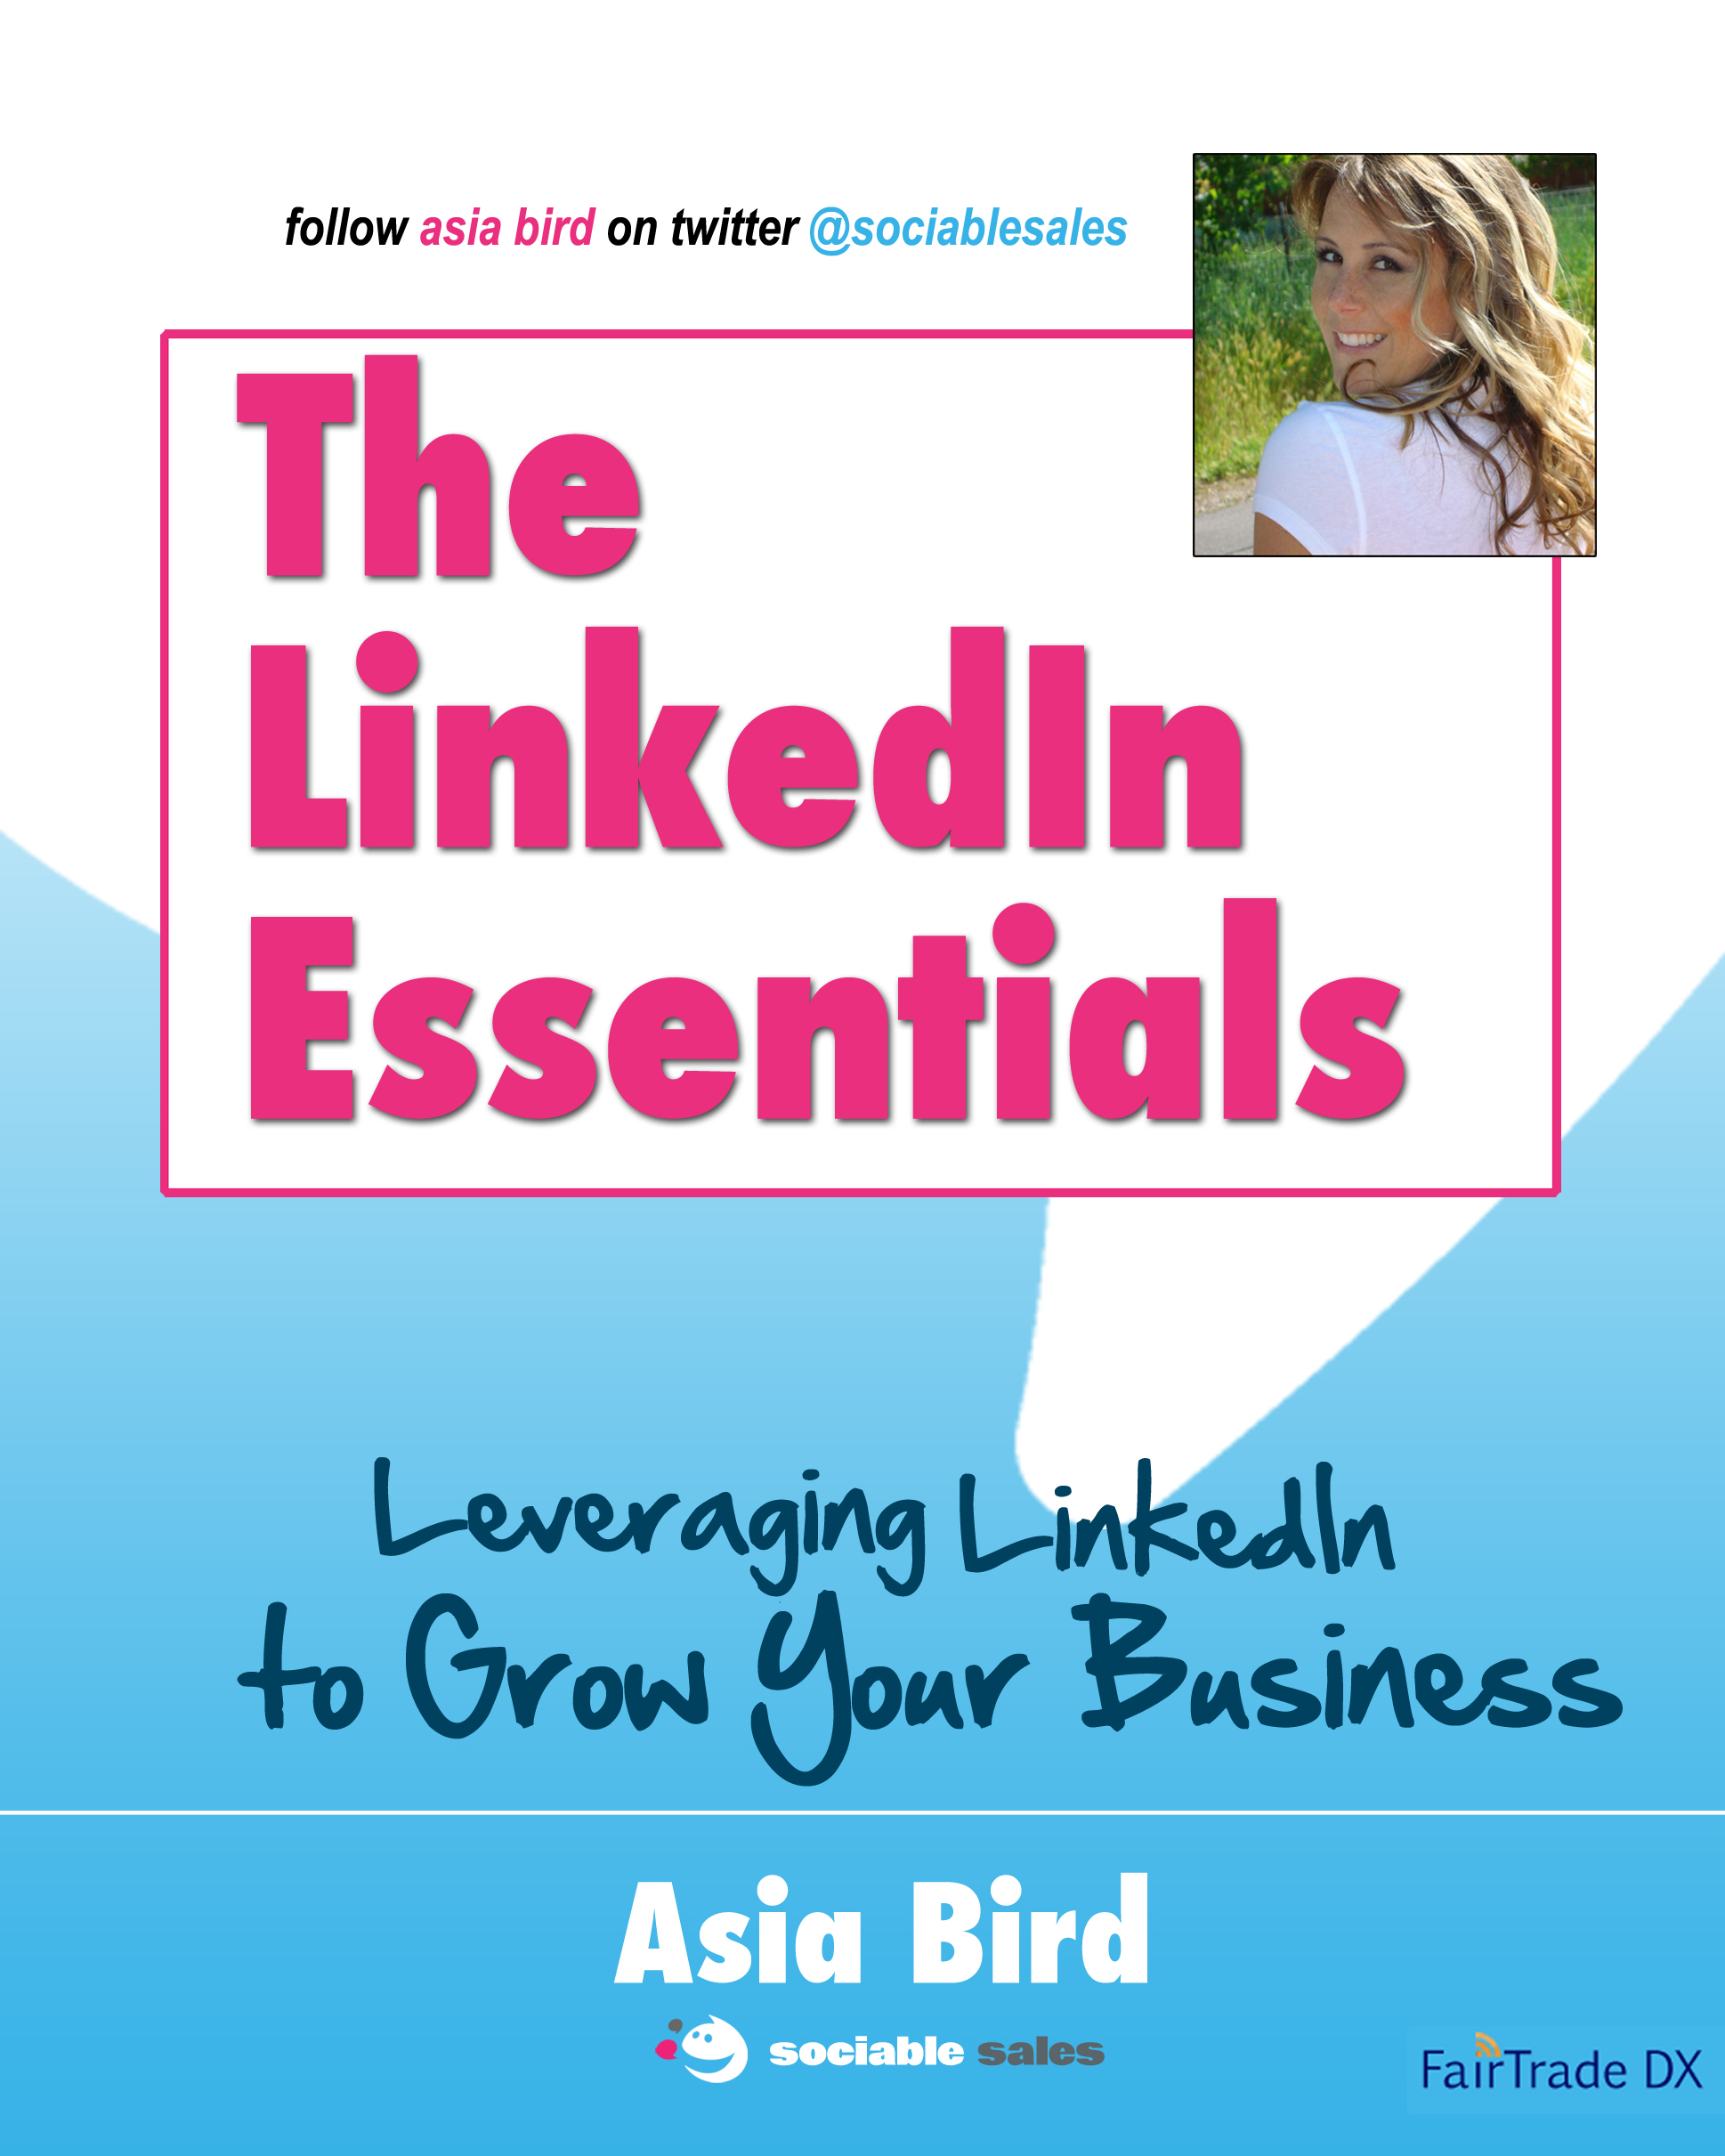 Asia Bird's new book, The LinkedIn Essentials, is available now at www.fairtradedx.com, Amazon.com, and BN.com